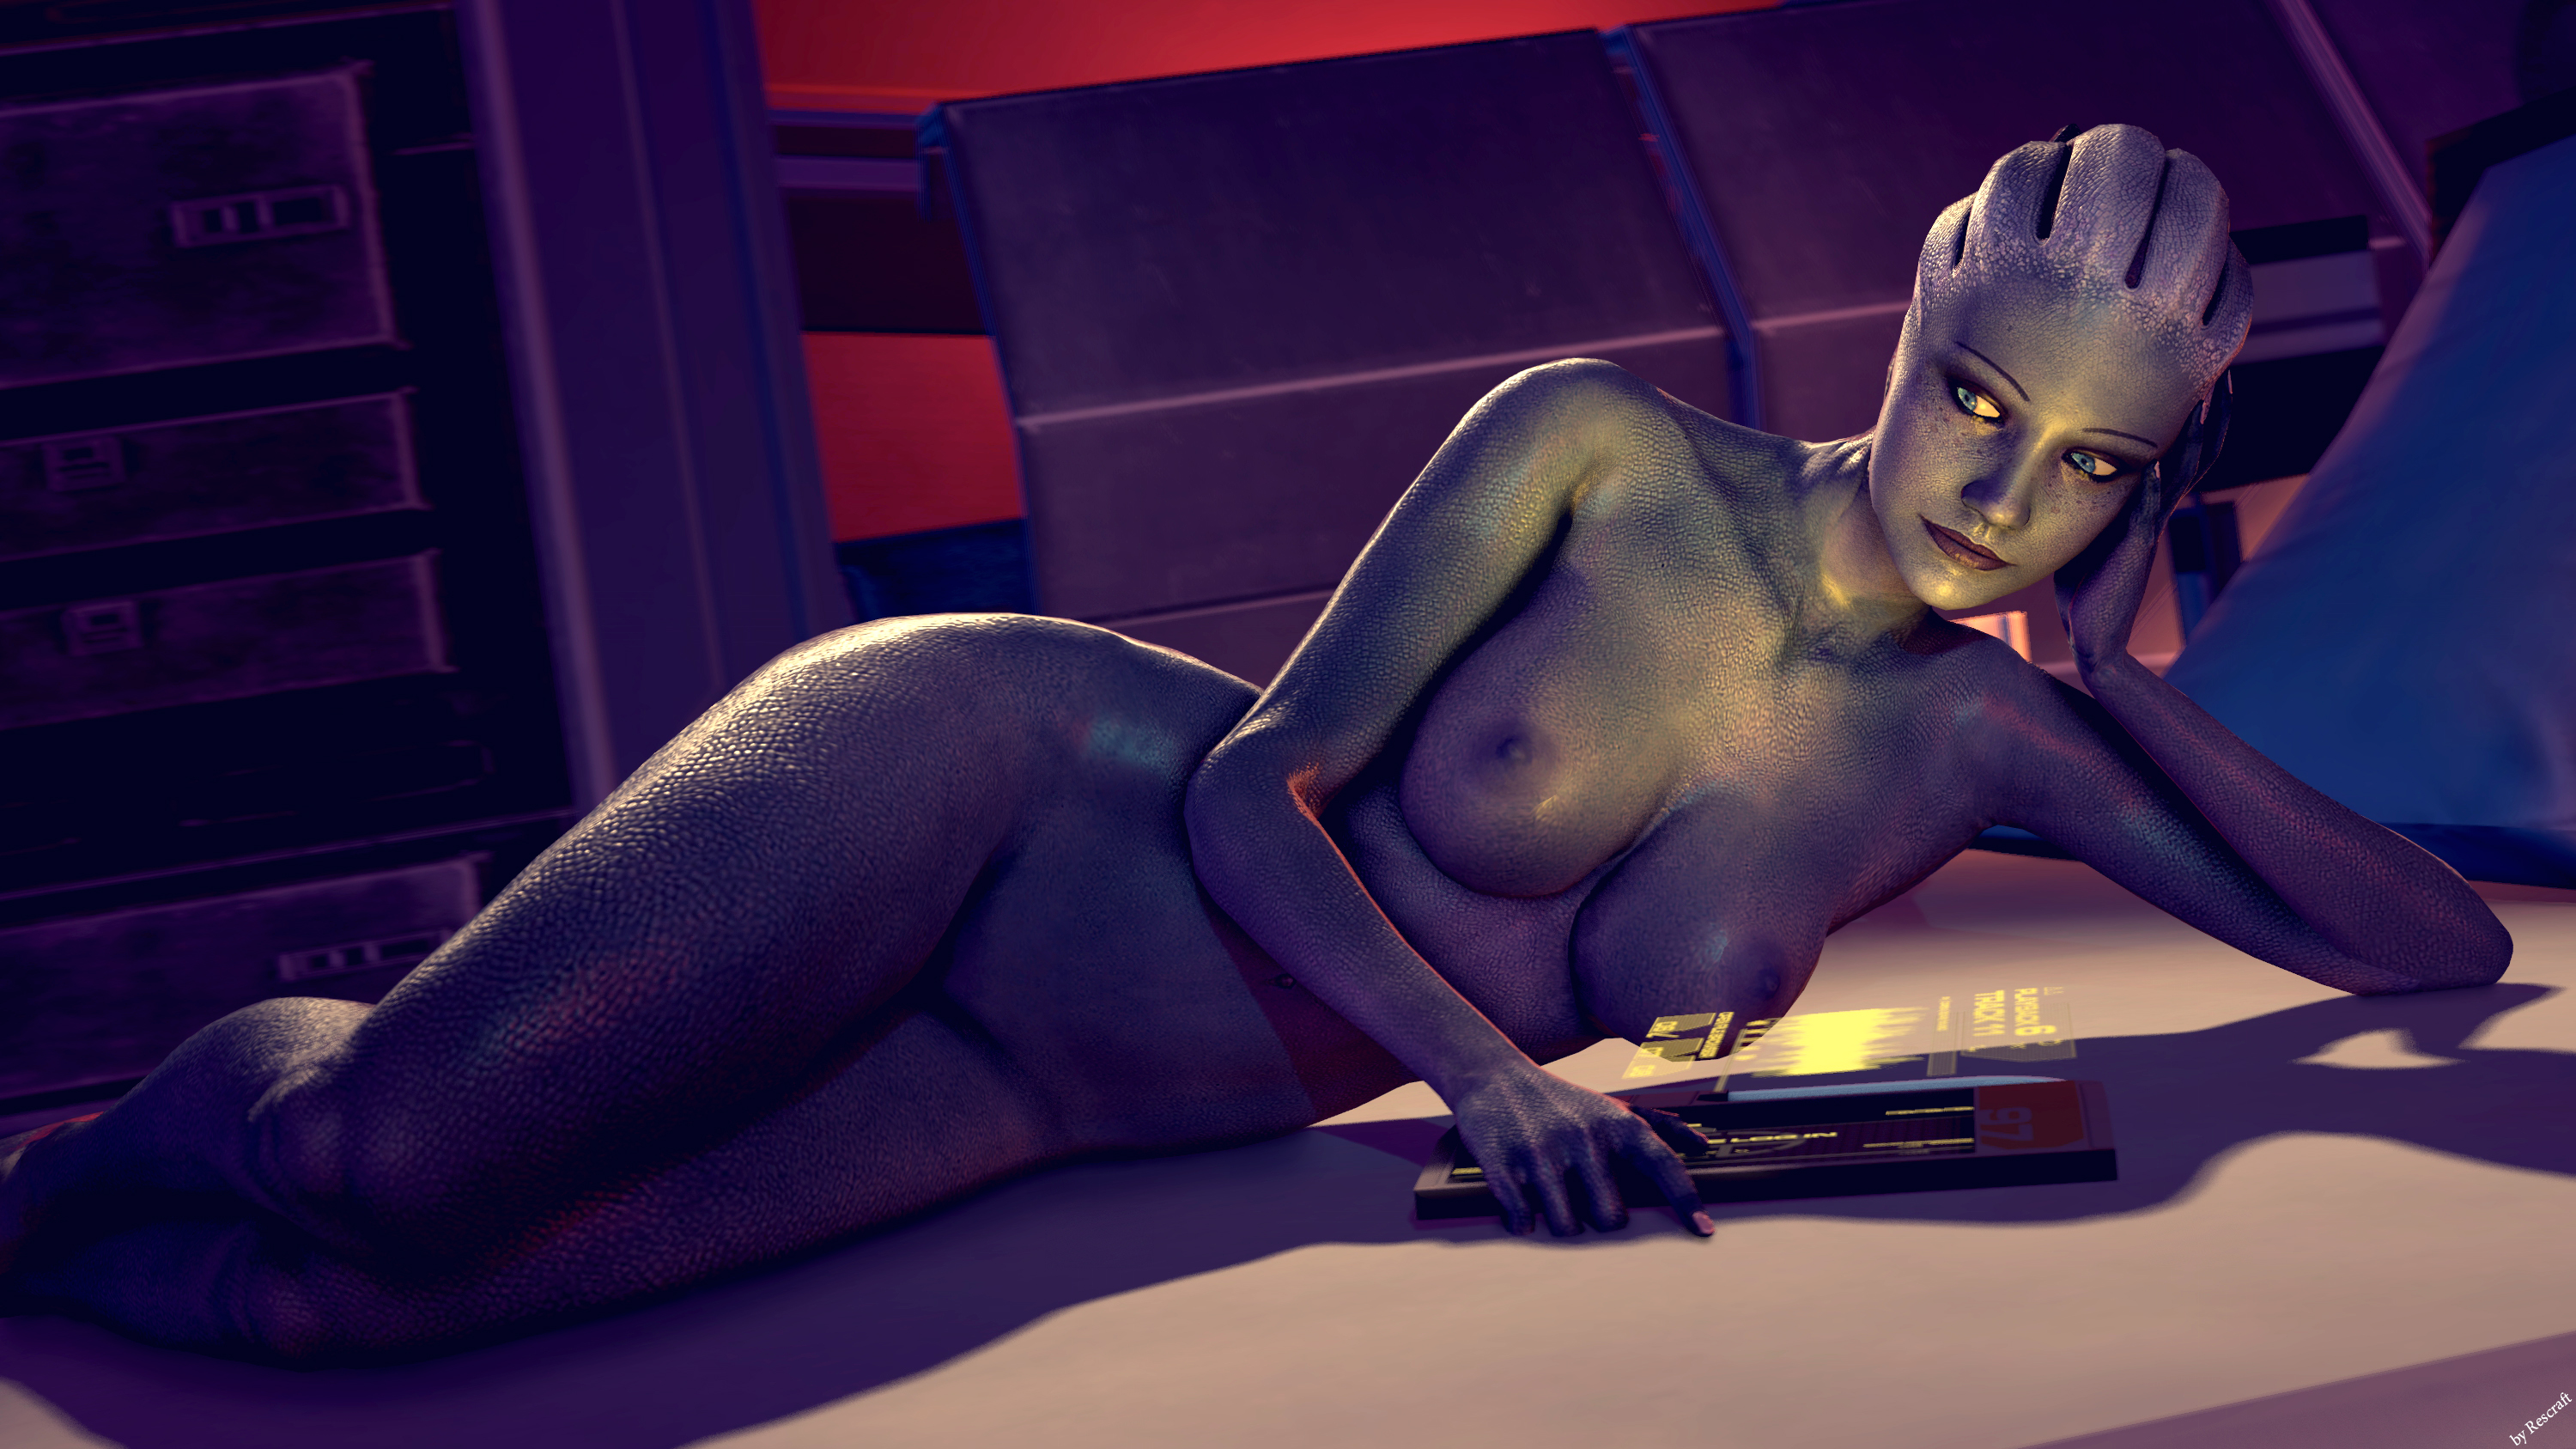 Mass effect liara sextoy erotic images